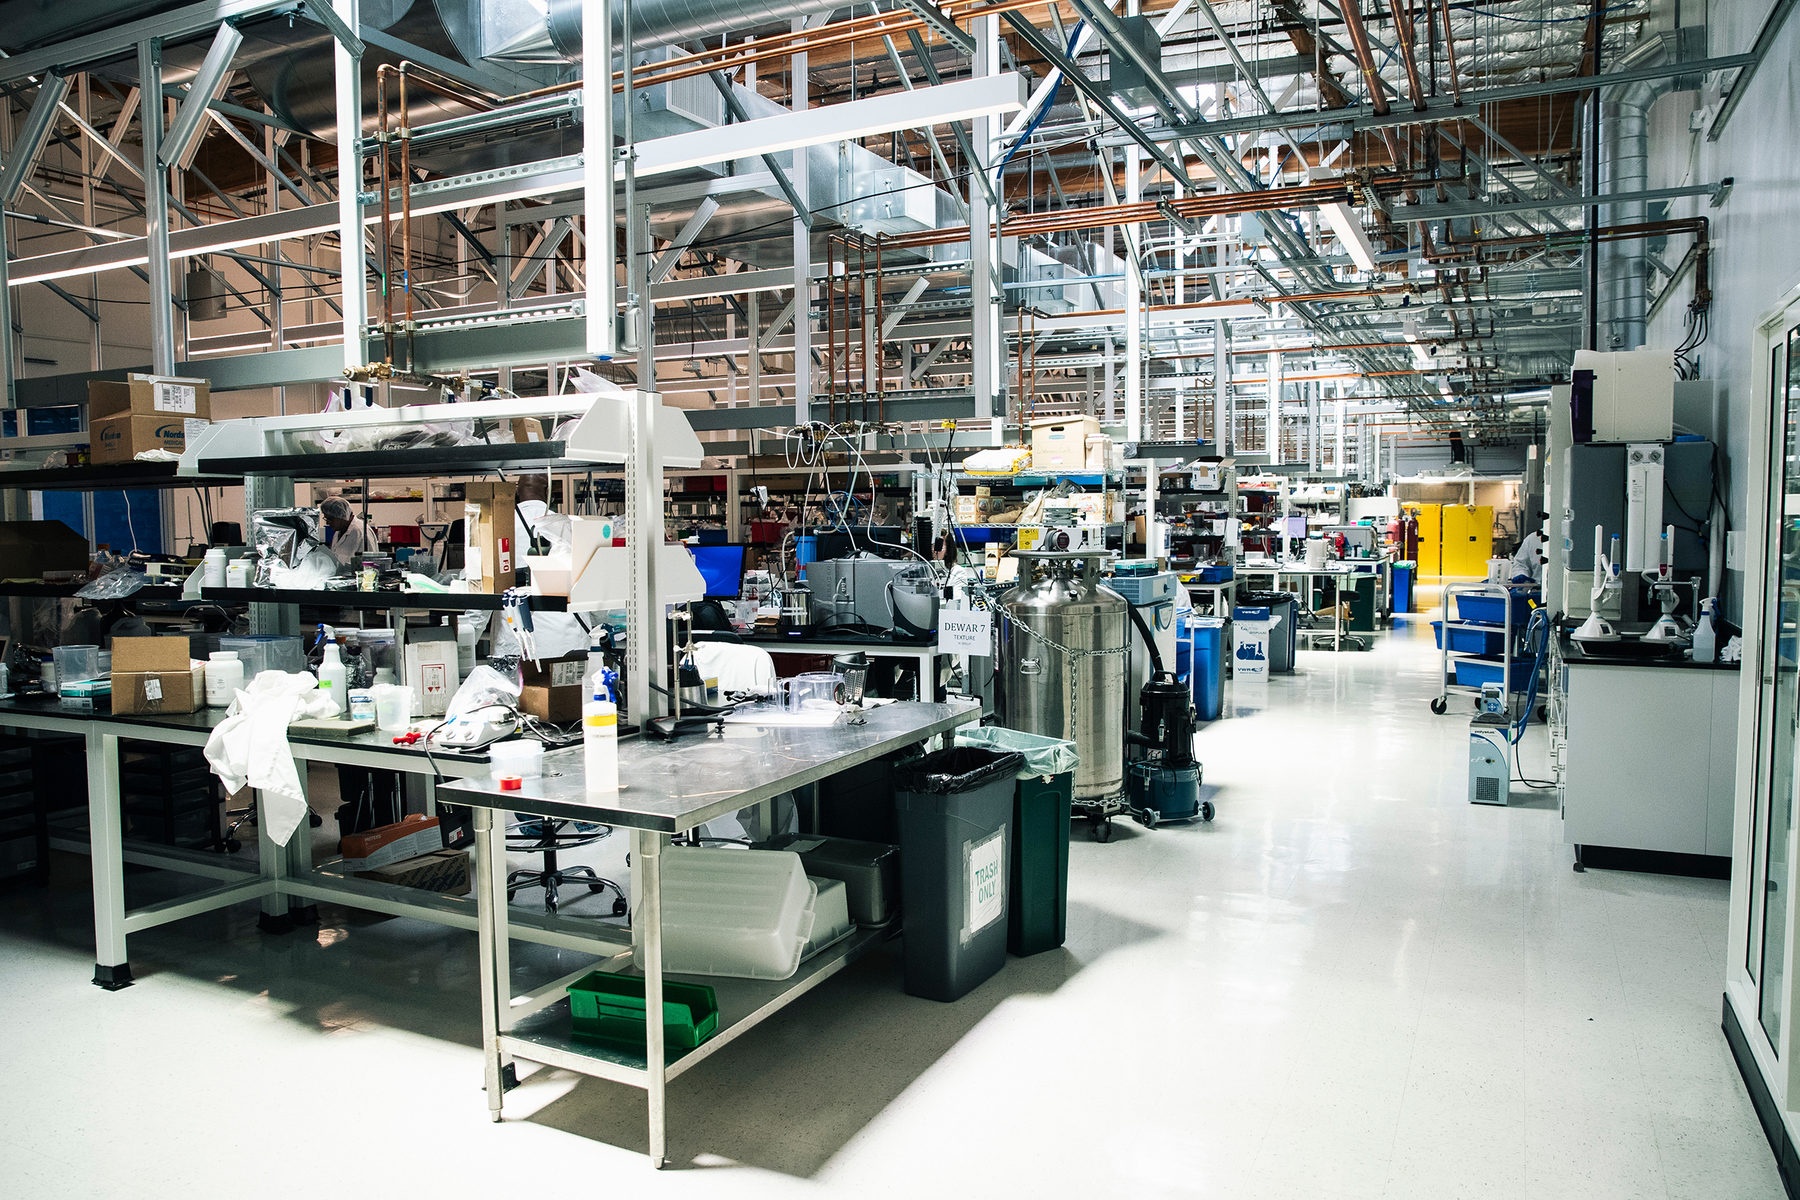 An interior view of the R&D lab inside Impossible Foods headquarters in Redwood City, Calif. on Thursday, June 20, 2019.